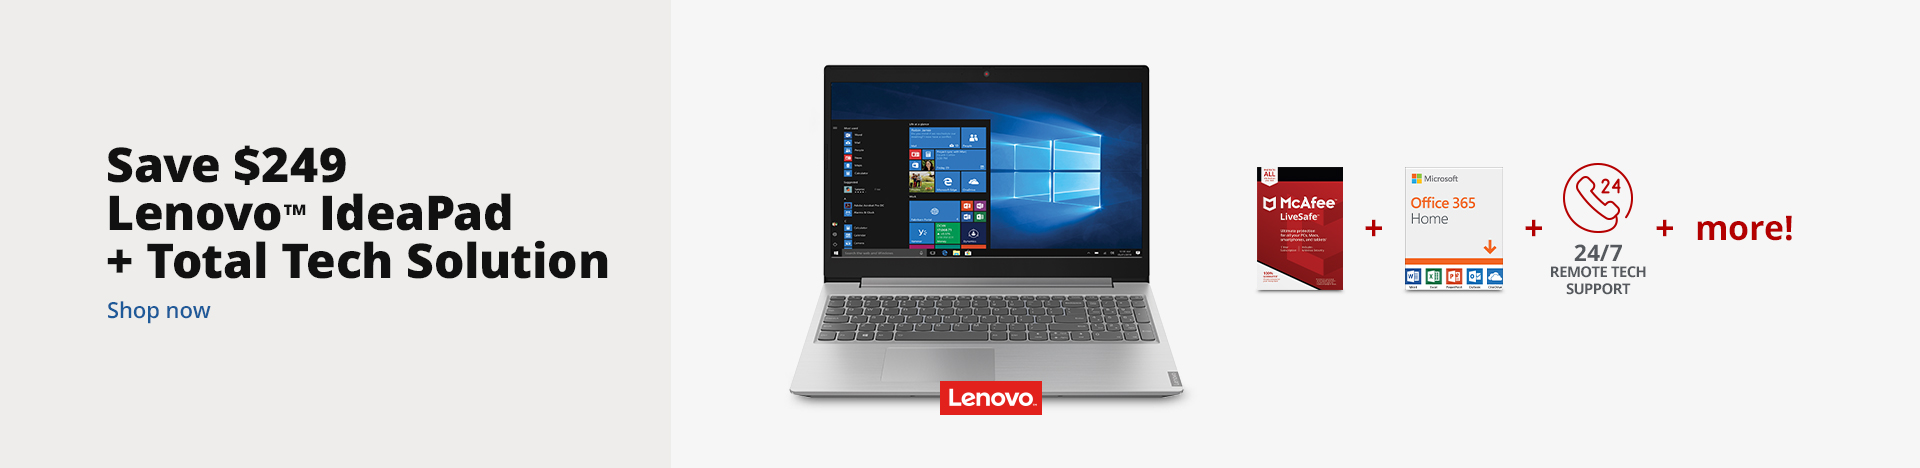 Save $249 on Lenovo IdeaPad + Total Tech Solution